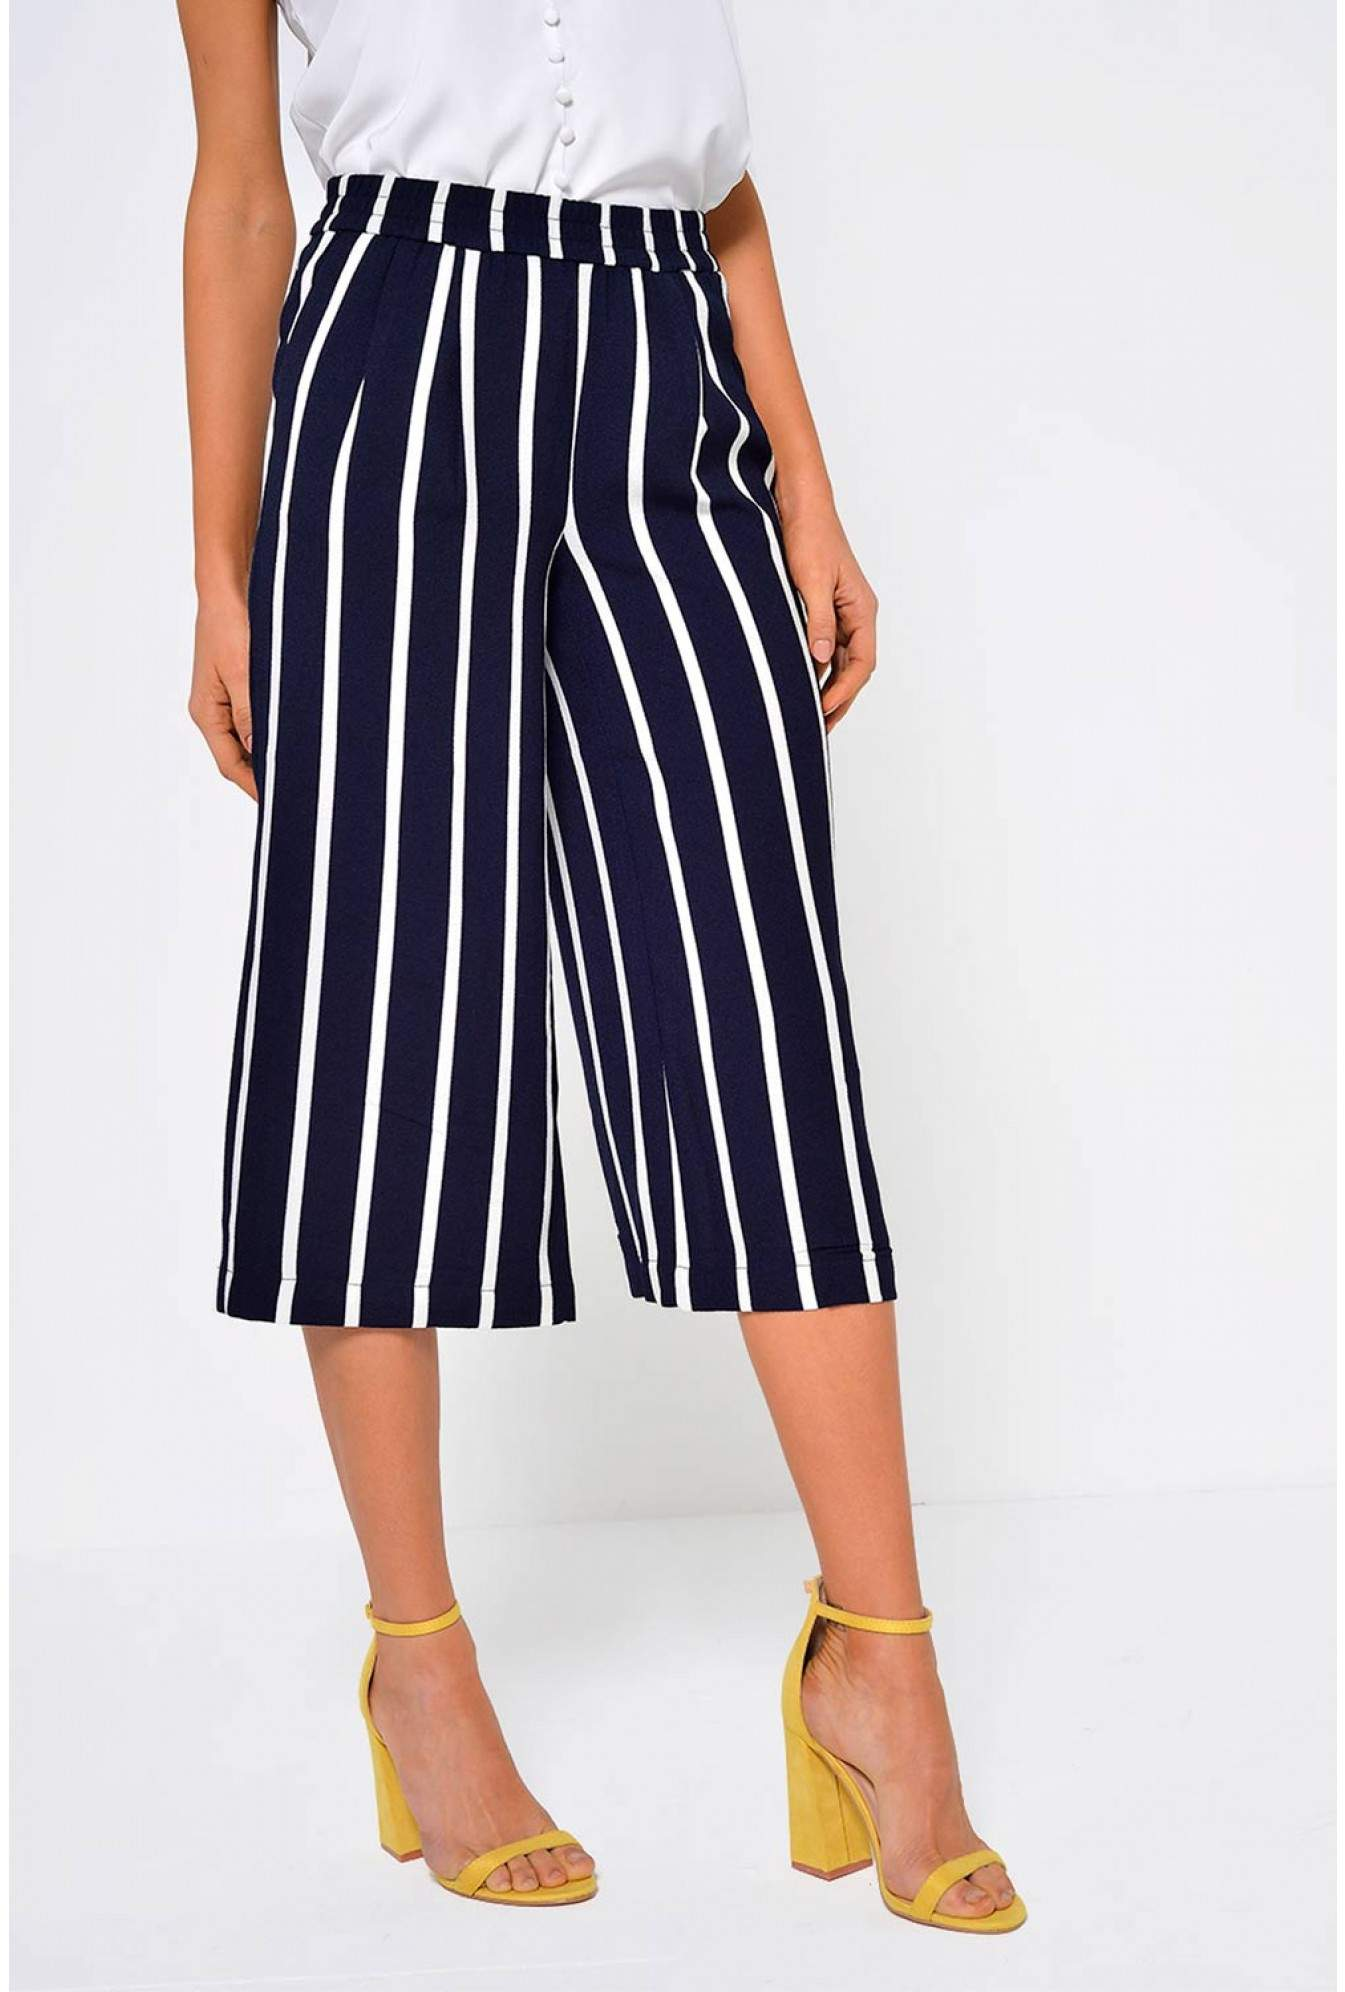 Only Piper Striped Culotte Pants in Navy  117e2b2969a76